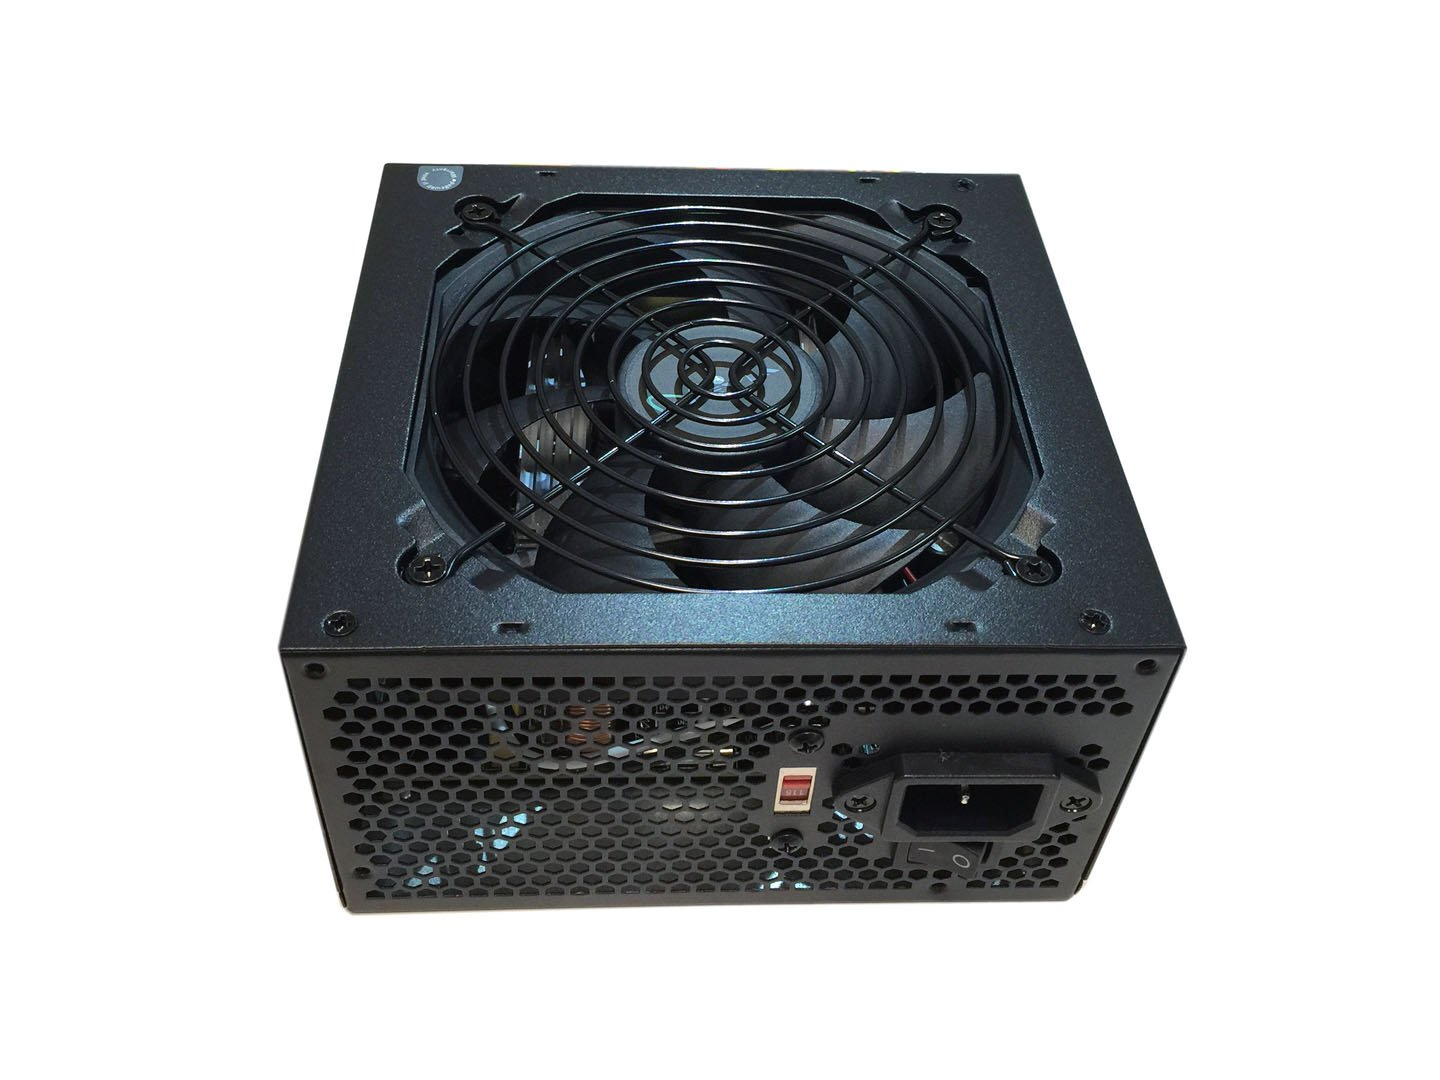 Apevia ATX-AS450W Astro 450W ATX Power Supply with Auto-Thermally Controlled 120mm Fan, 115/230V Switch, All Protections